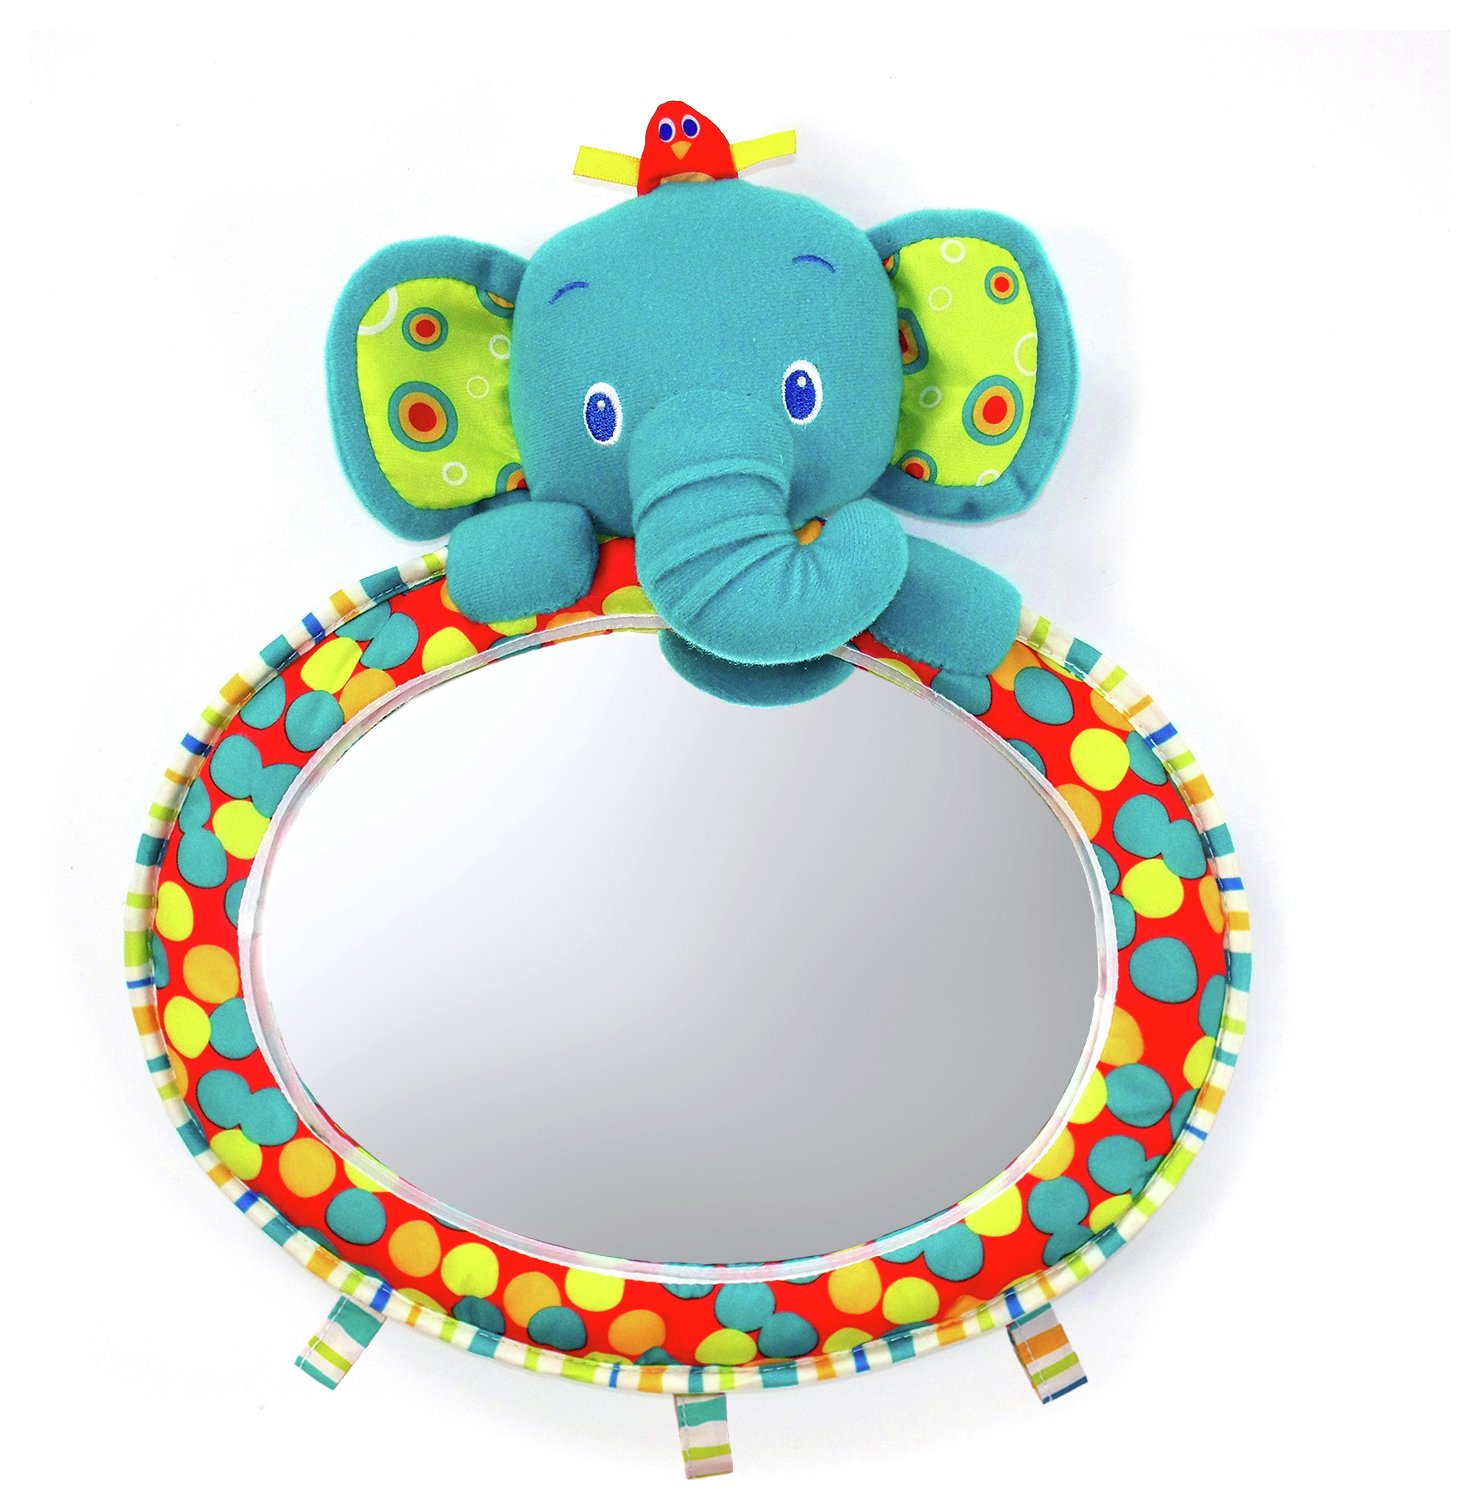 Image of Bright Starts - See and Play Auto Mirror Toy